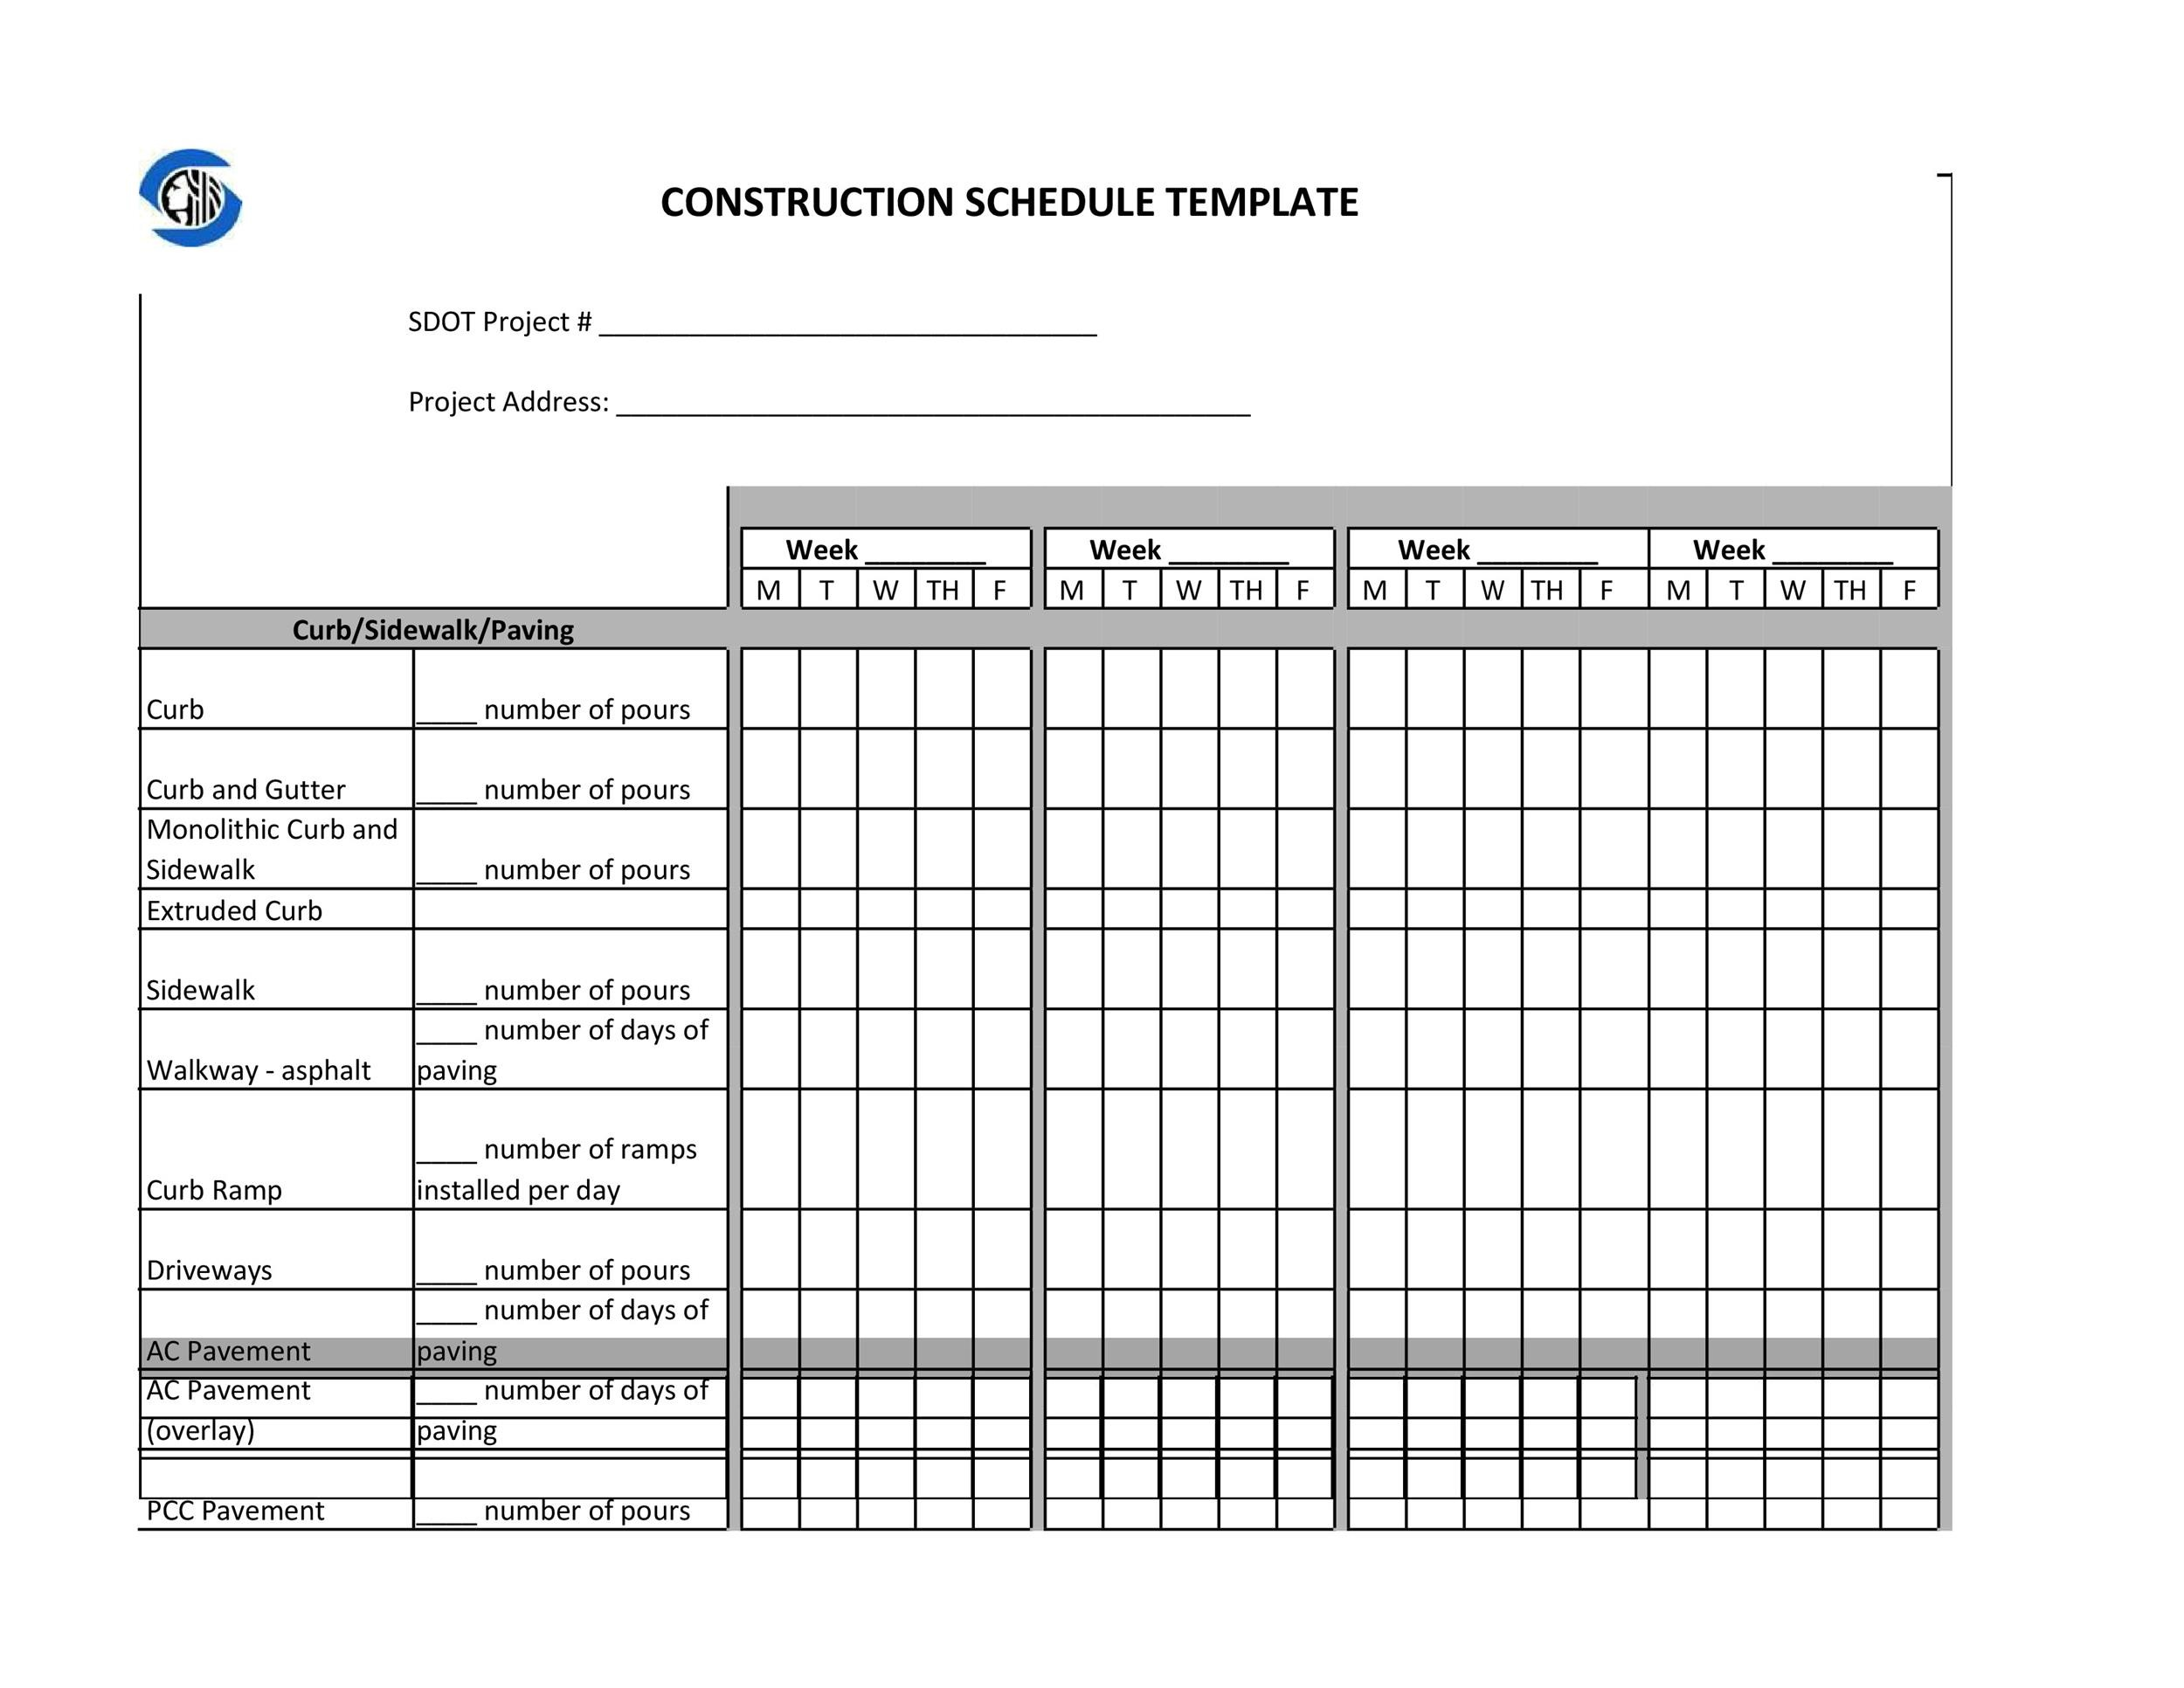 21 Construction Schedule Templates in Word & Excel ᐅ